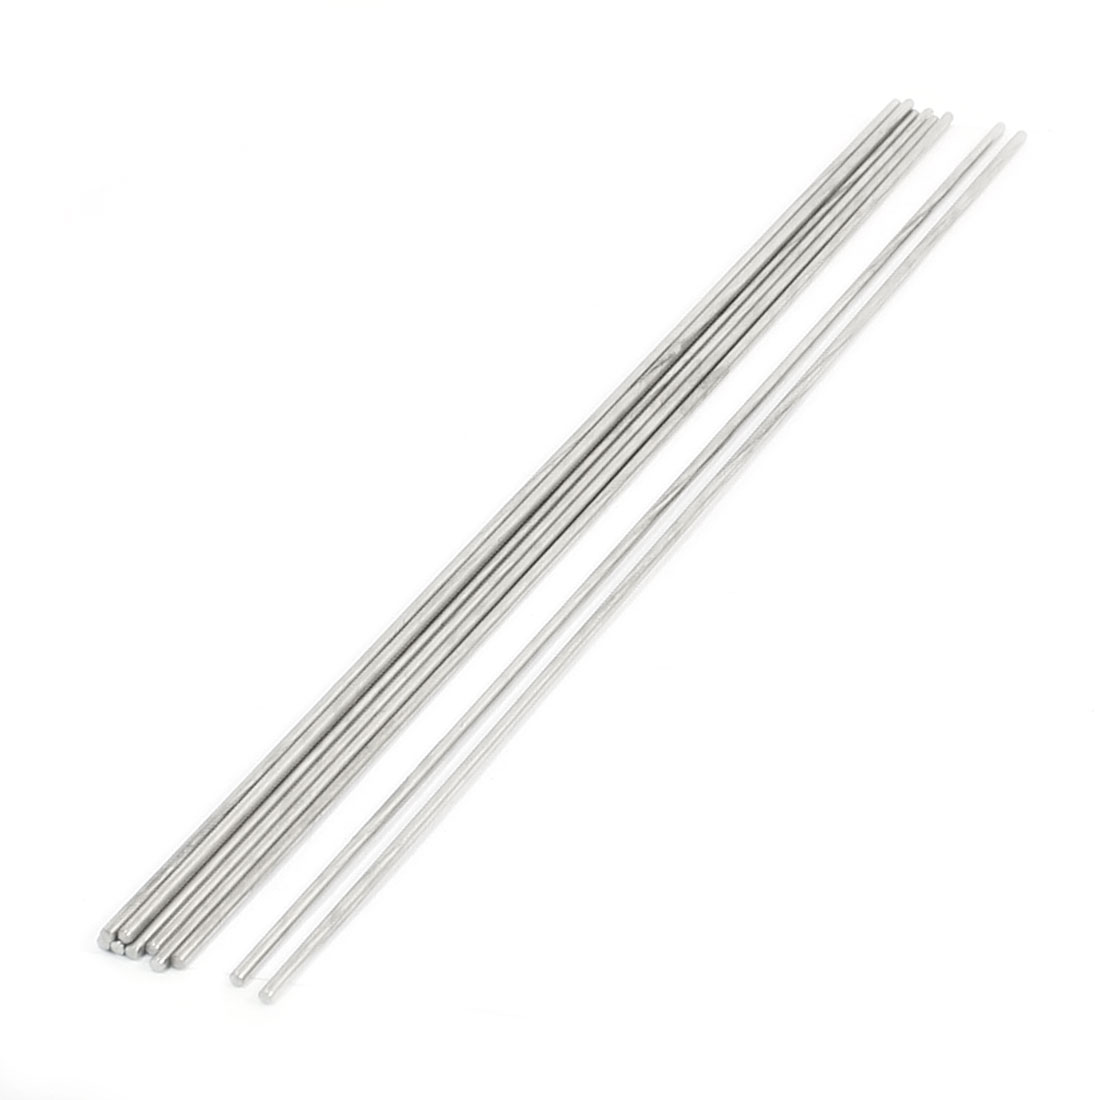 10Pcs Hardware Tool Stainless Steel 300x2.5mm Transmission Round Rods